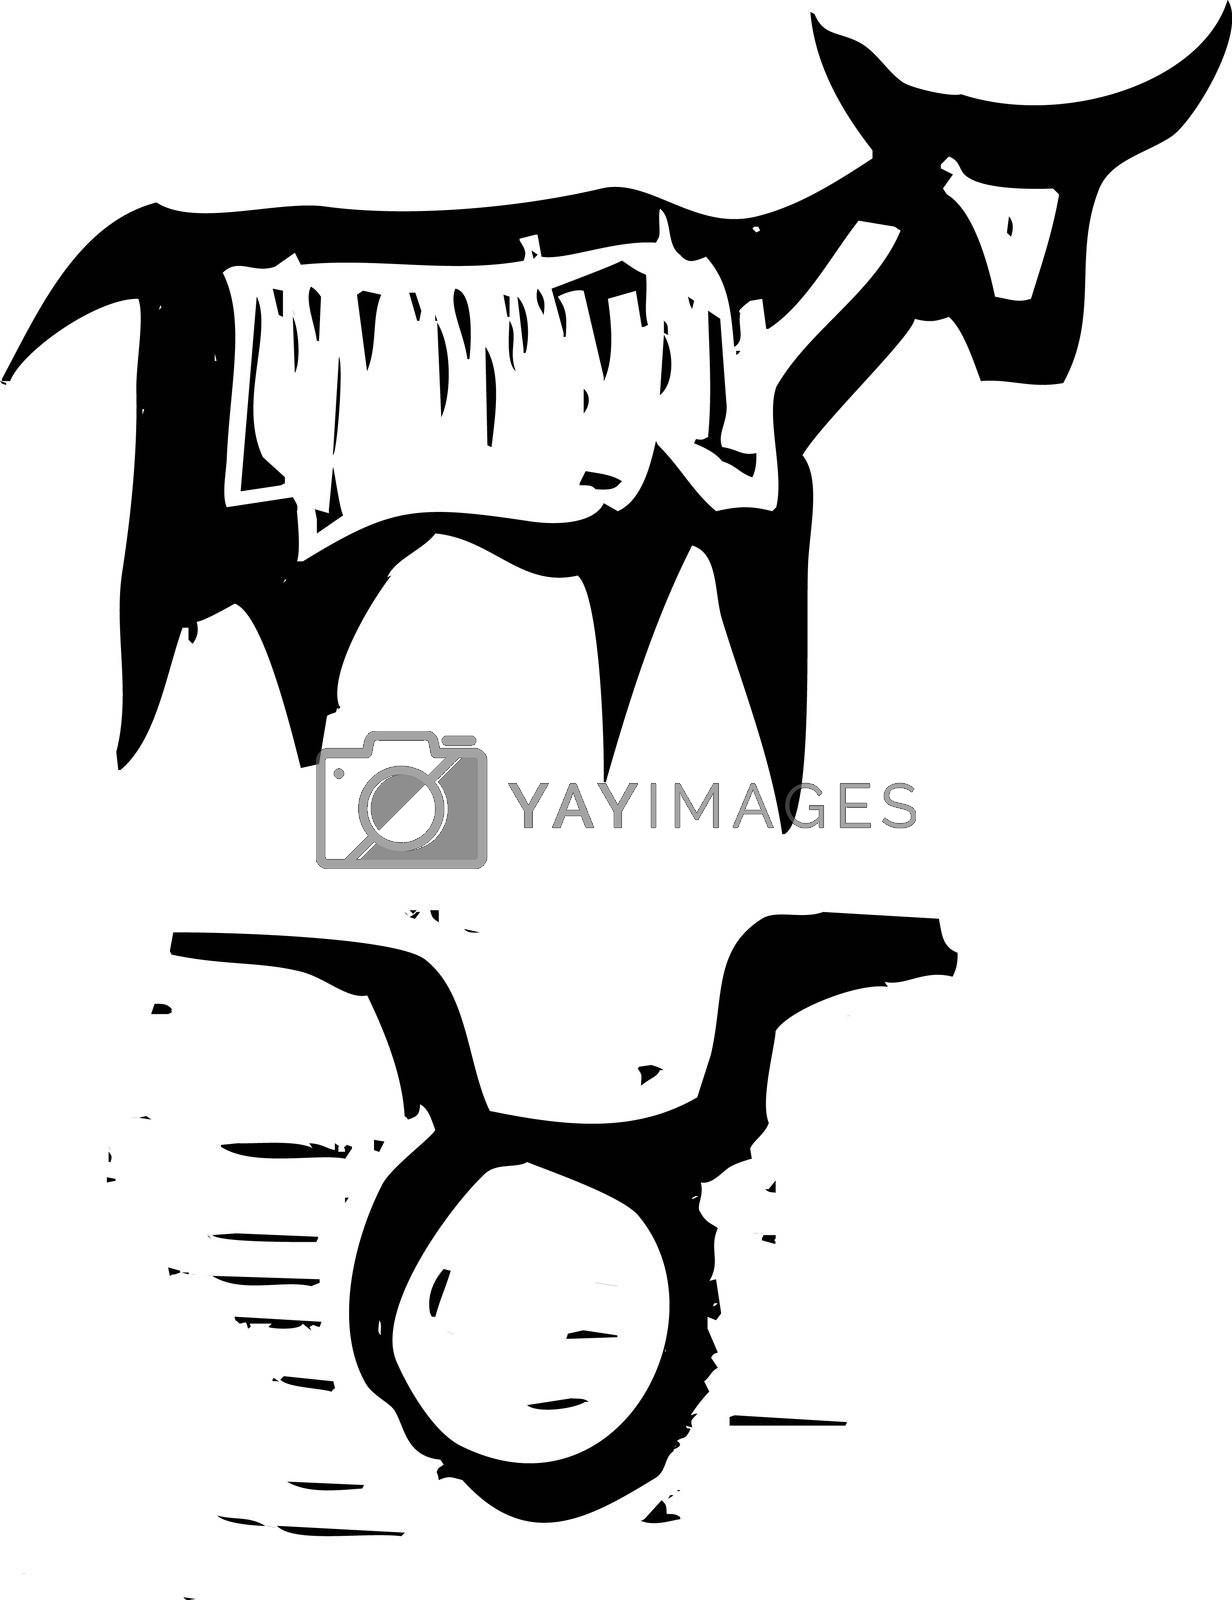 Primitive woodcut style zodiac sign of Taurus. Part of a series.